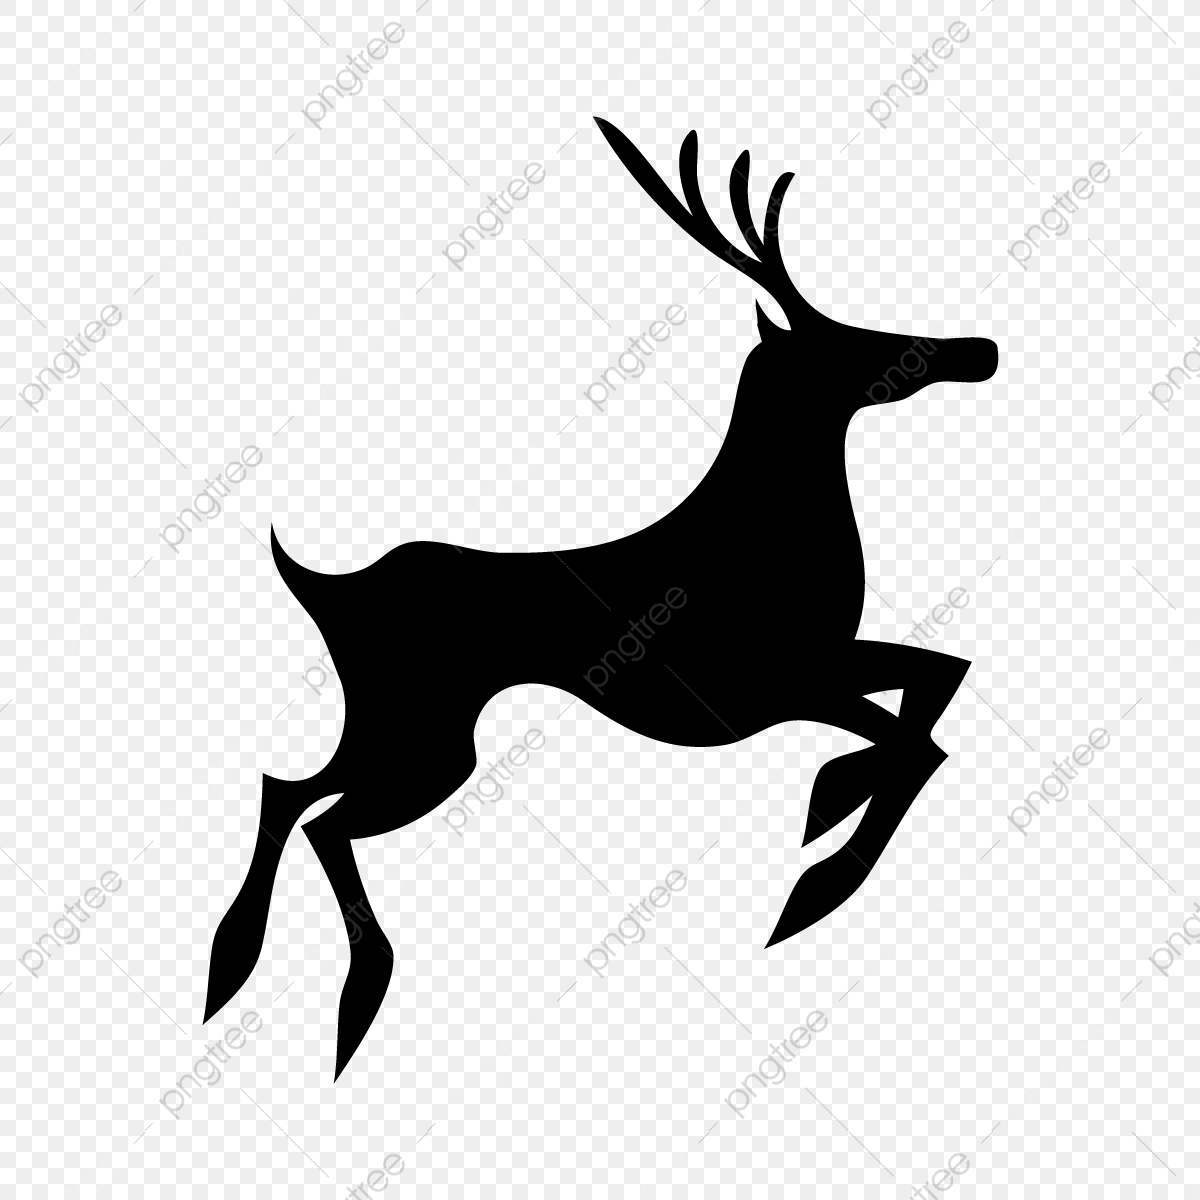 Deer Vector, Silhouette, Black, Deer PNG and Vector with Transparent.